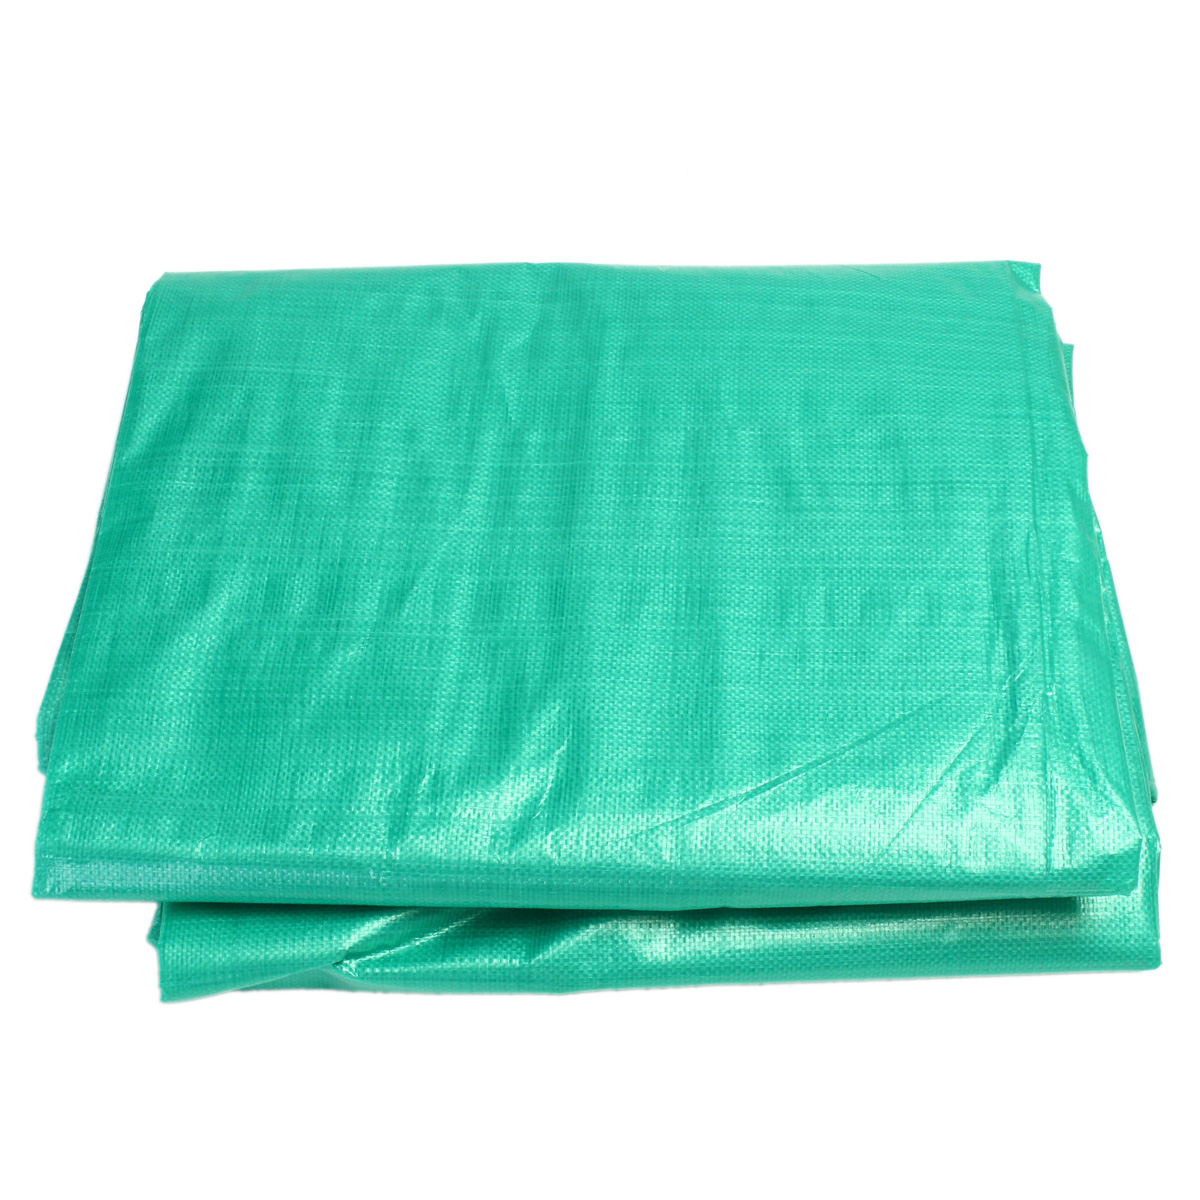 PE 5.47.3m/17.724ft Outdoor Waterproof Camping Tarpaulin Field Camp Tent Cover Car Cover Canopy